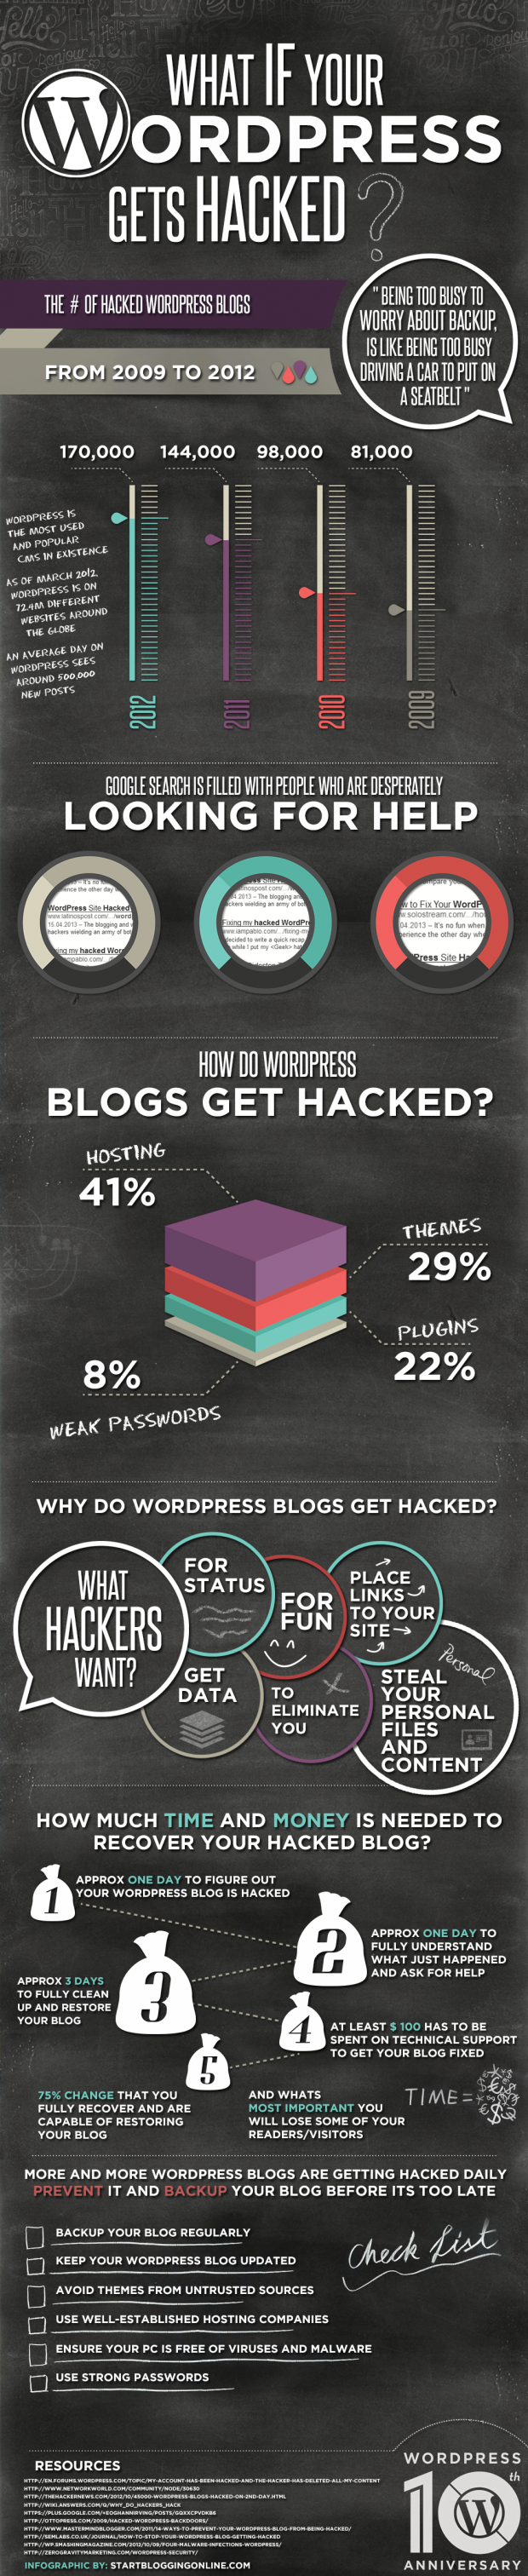 A comprehensive guide to recover your WordPress if it gets hacked